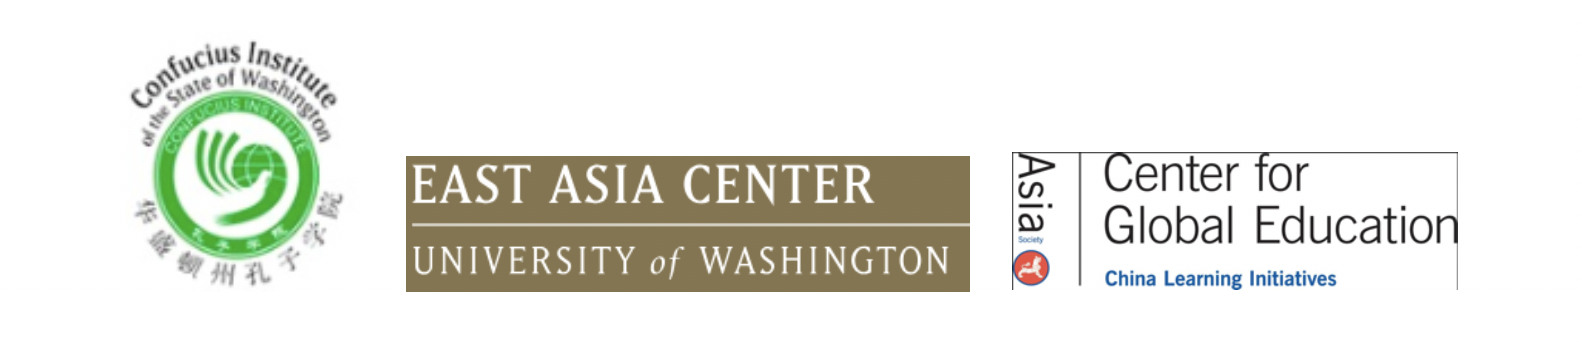 2019 Summer Workshop: Go Real: Creating Relevant and Engaging Learning Experiences for K-12 Chinese Language Learners (8/17/2019) @ Communications Building (CMU) 120, University of Washington, Seattle, WA